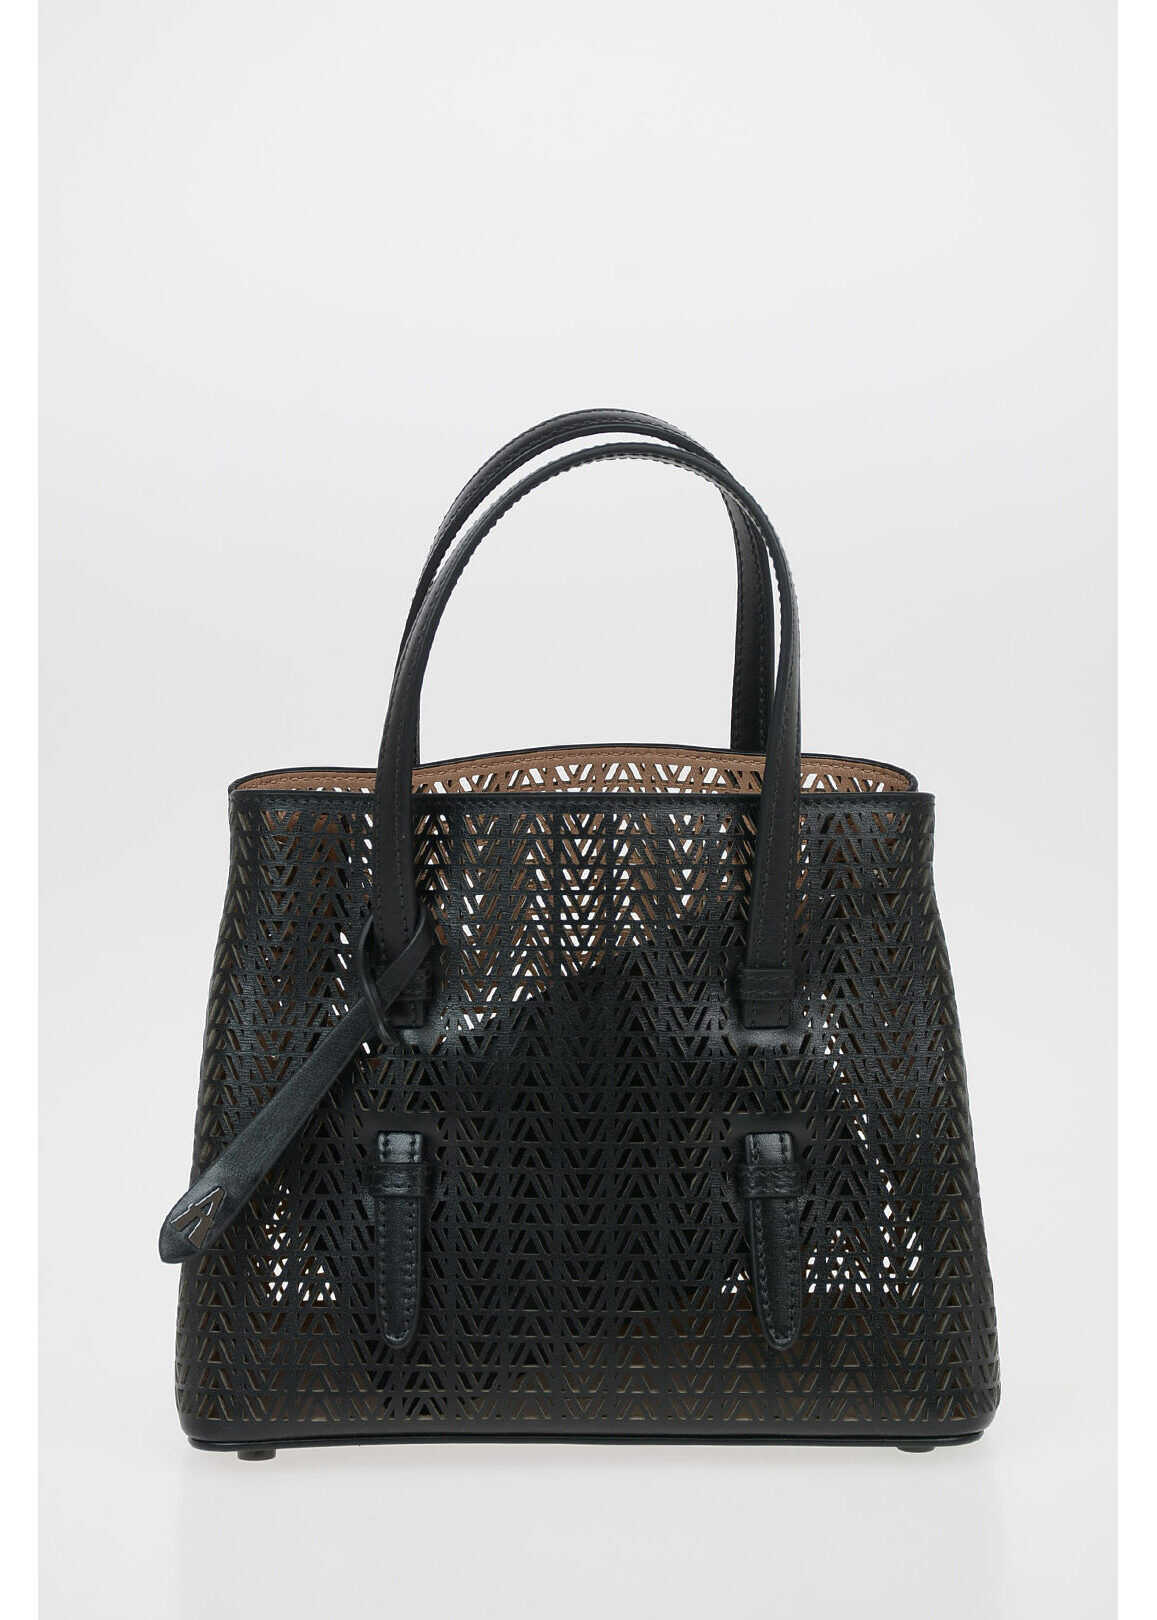 Alaïa Laser Cut Leather MINA SMALL Tote Bag with Removable Shoulde BLACK imagine b-mall.ro